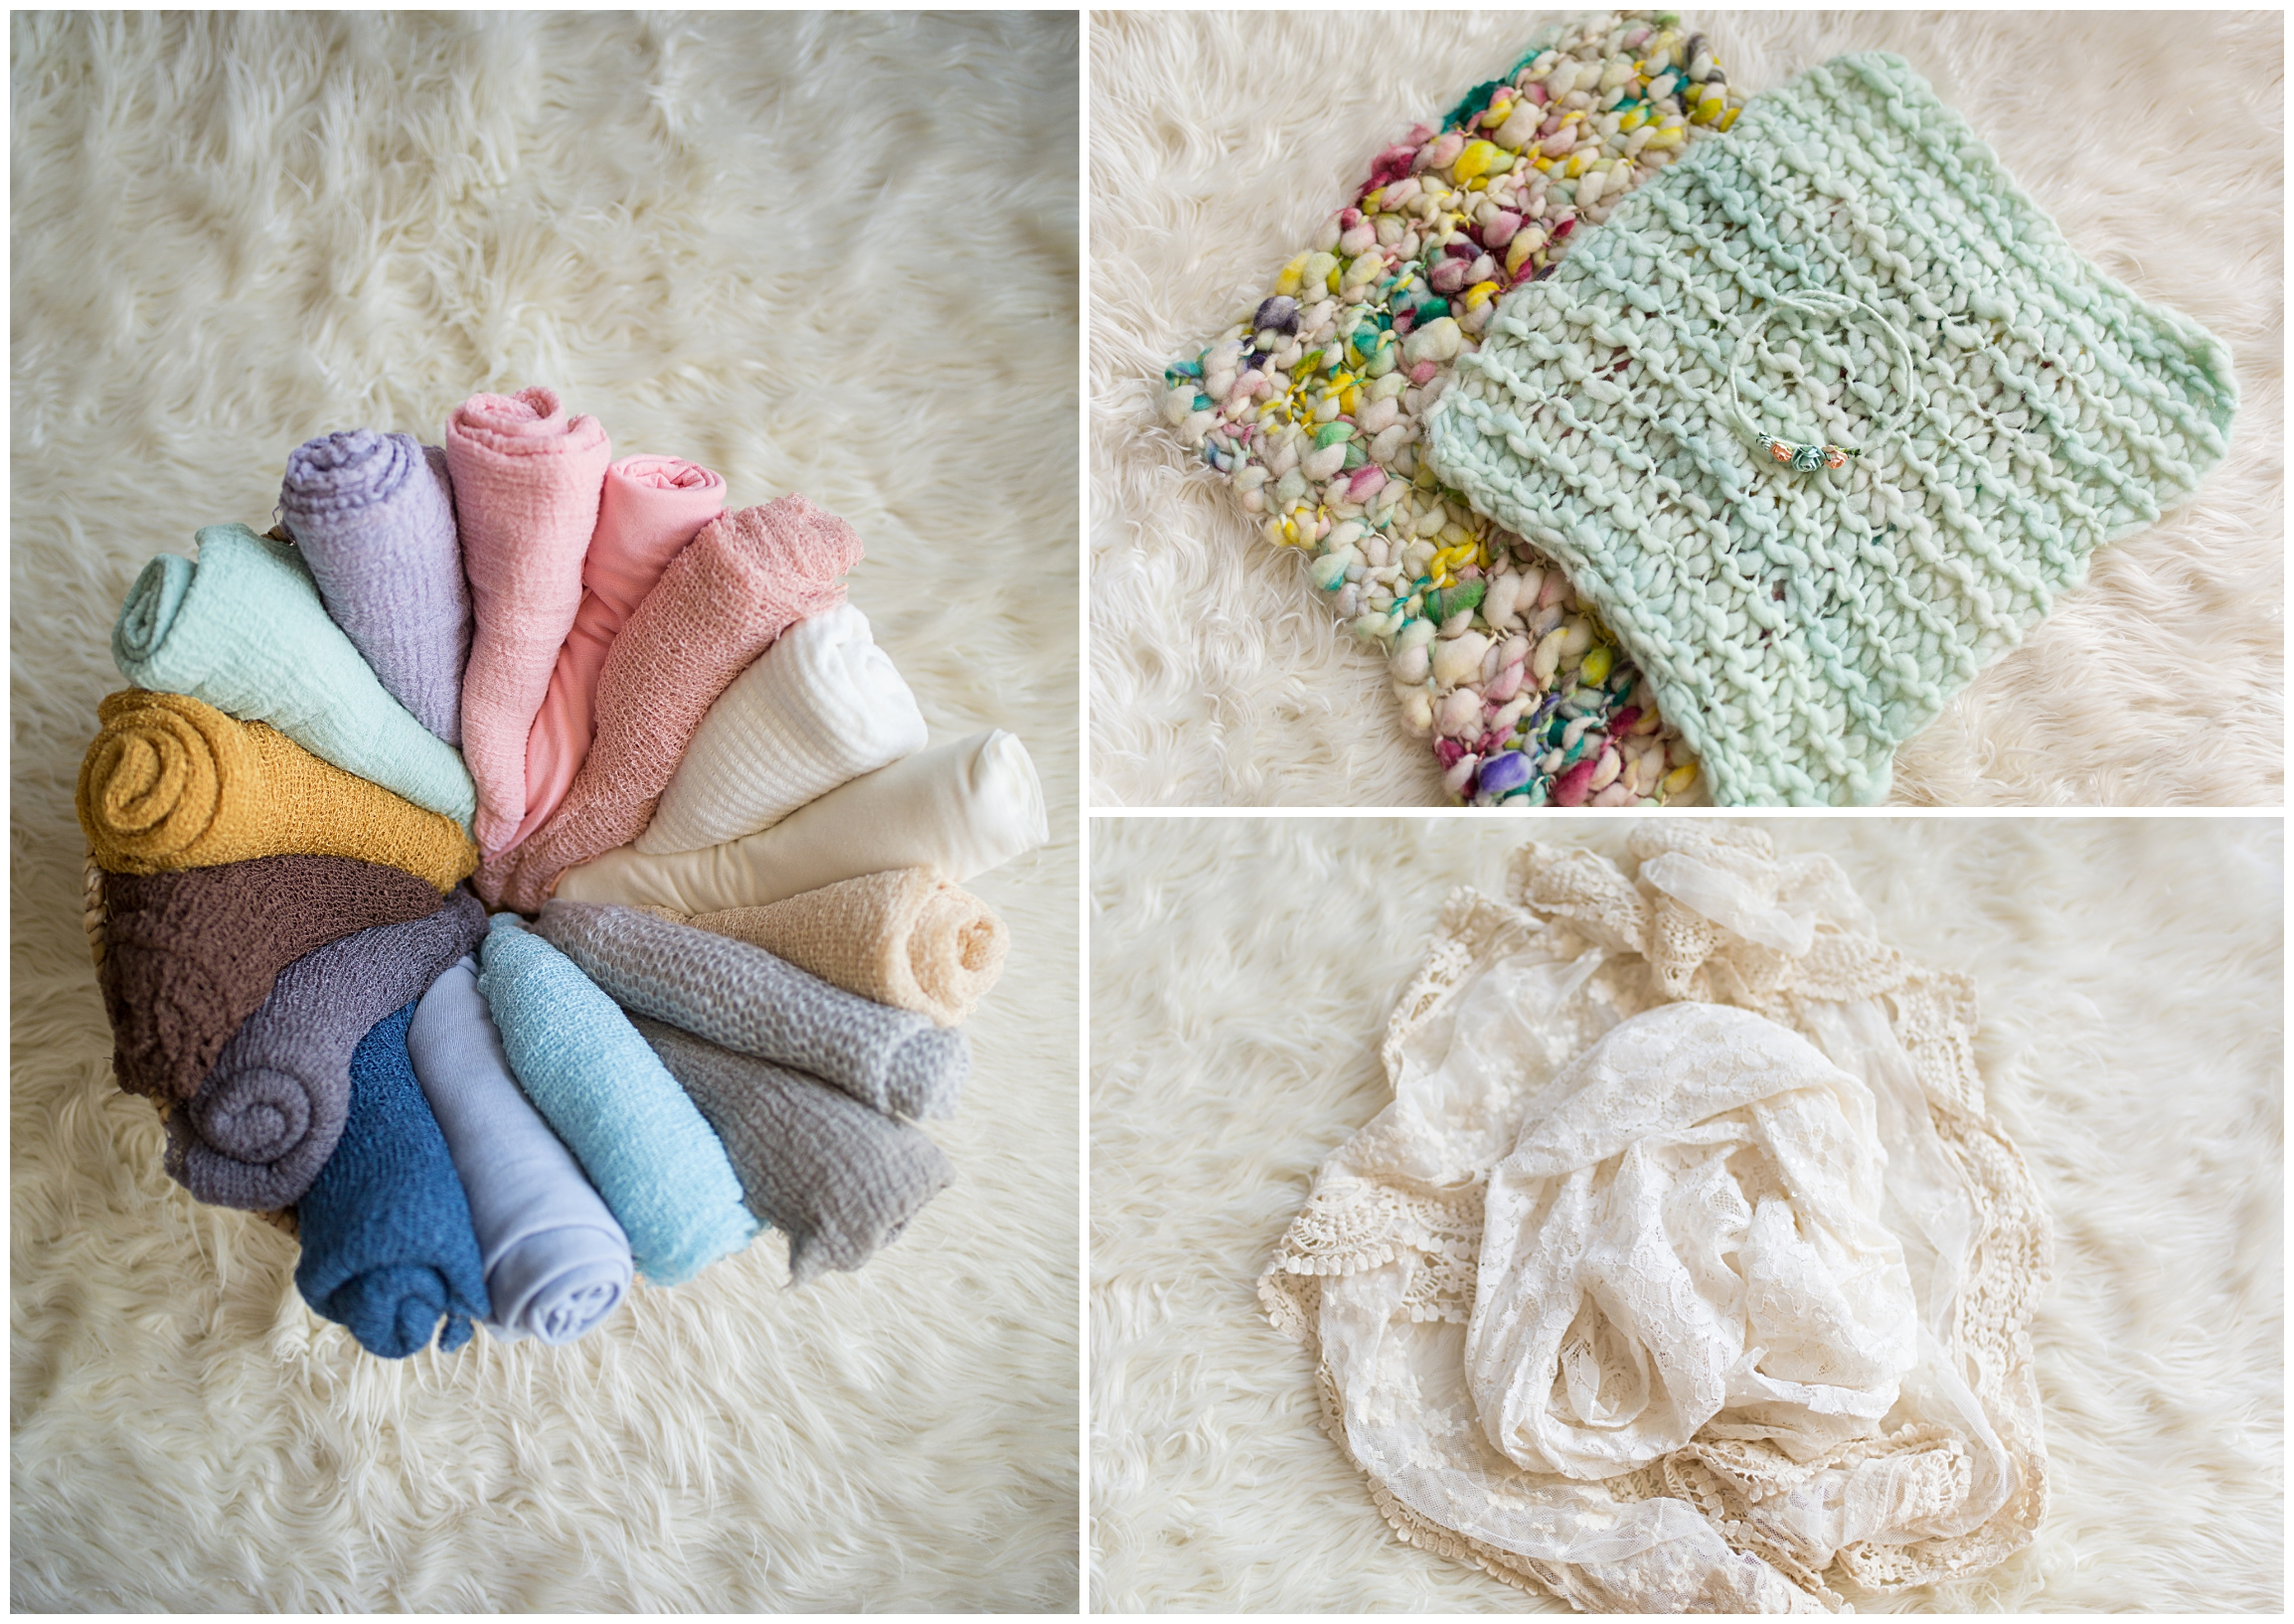 The photo on the left are all my swaddle wraps. This is what I use to bundle your baby up all snug and warm. The top and bottom photos are layer pieces made from hand-spun wool and lace. They bring beautiful texture and color to your images and babies love how soft they are!